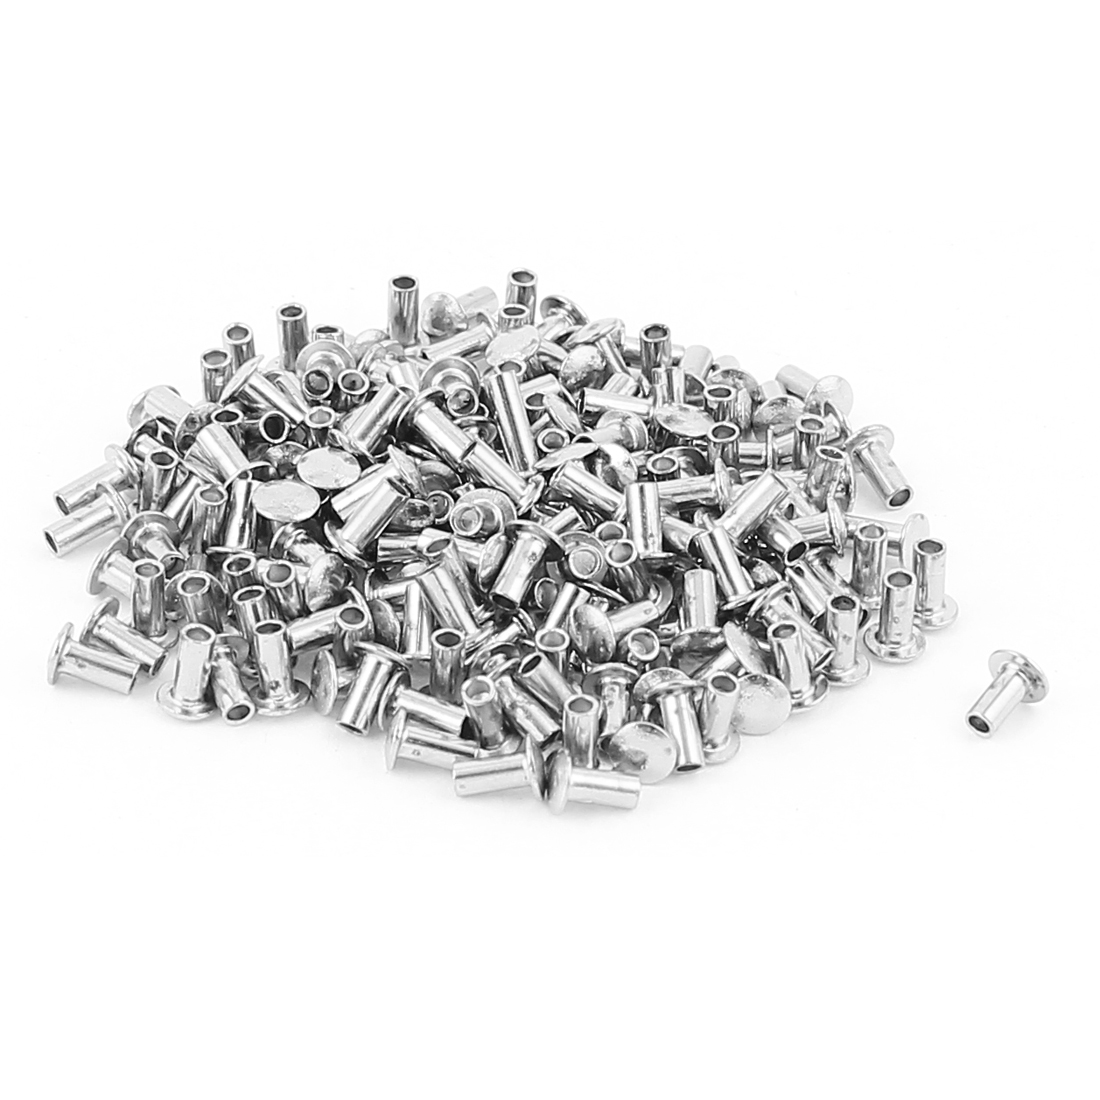 "200 Pcs 5/64"" x 5/32"" Nickel Plated Fasteners Oval Head Semi Tubular Rivets Silver Tone"